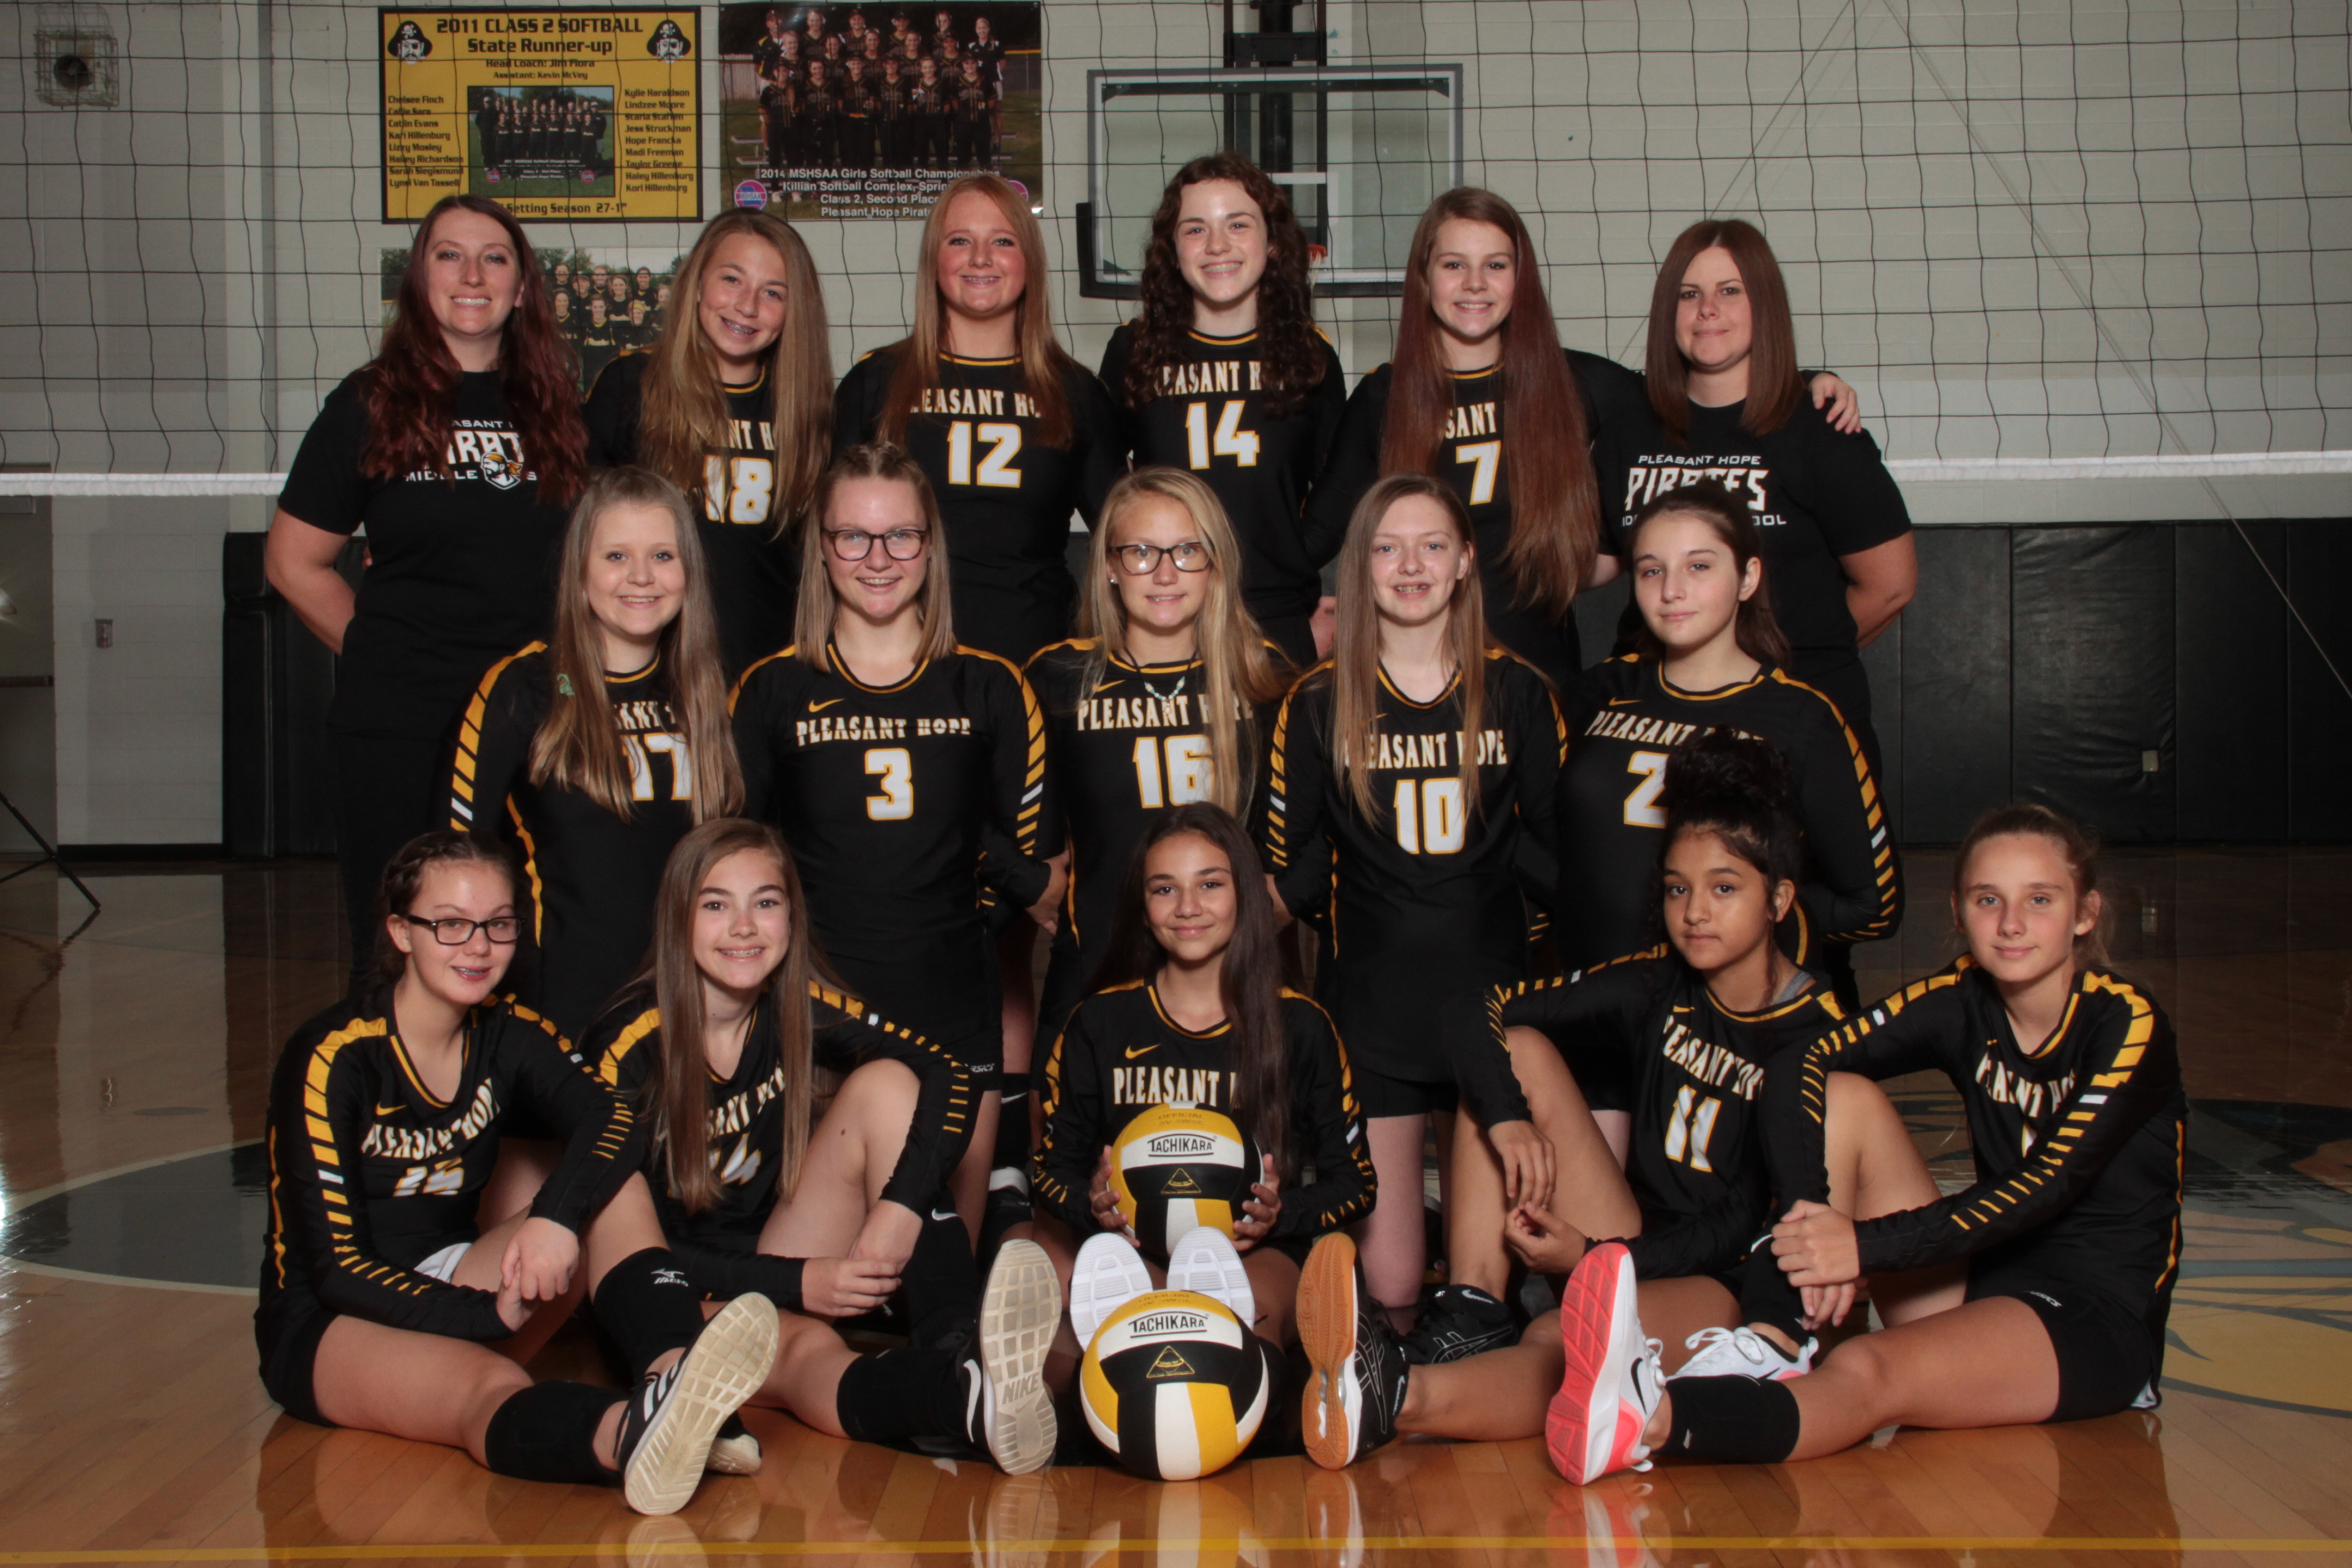 MS Volleyball Team Picture